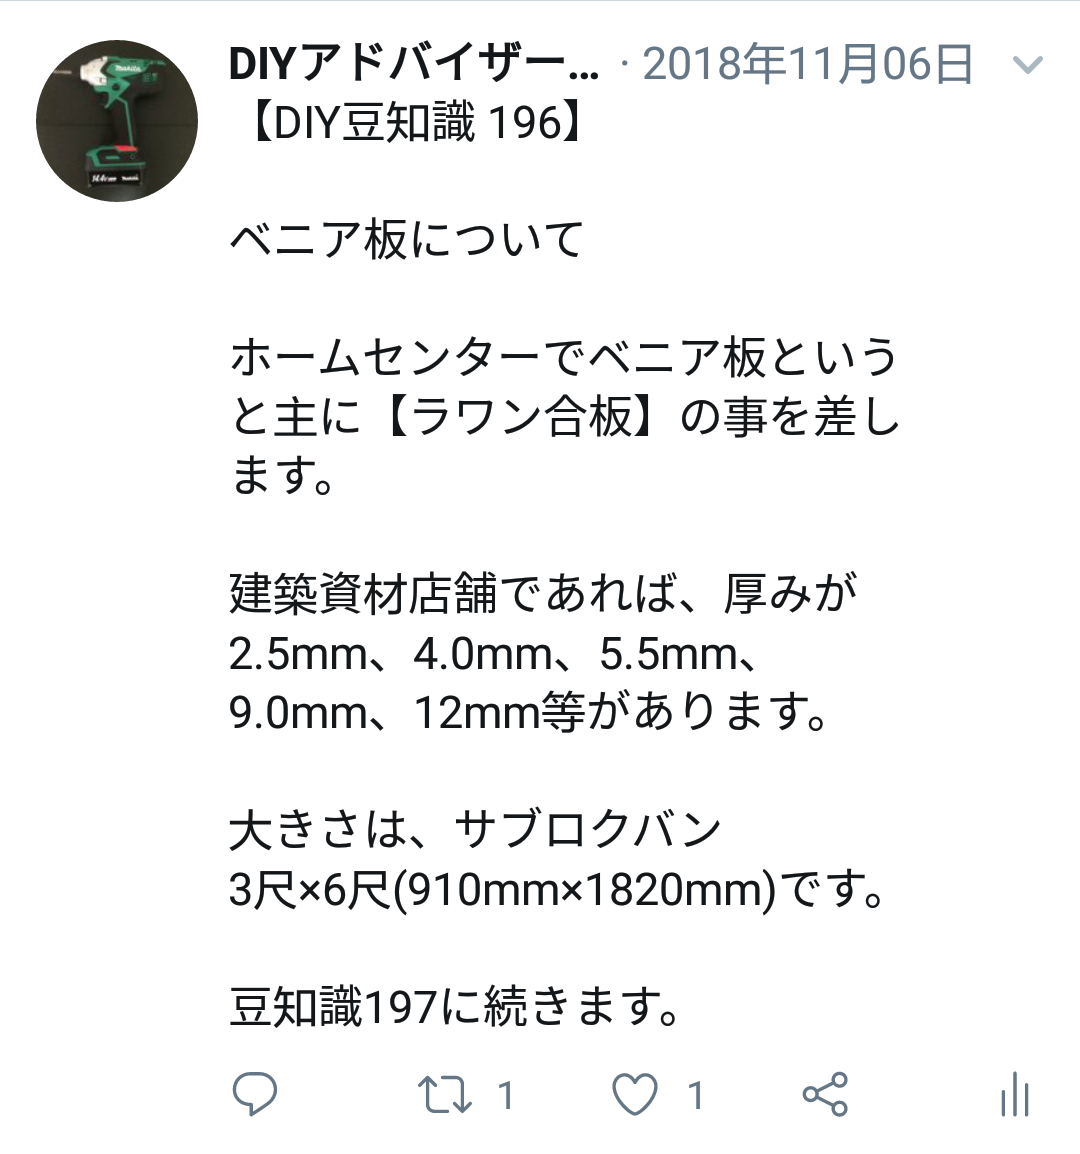 f:id:DIY33:20190407230404p:plain